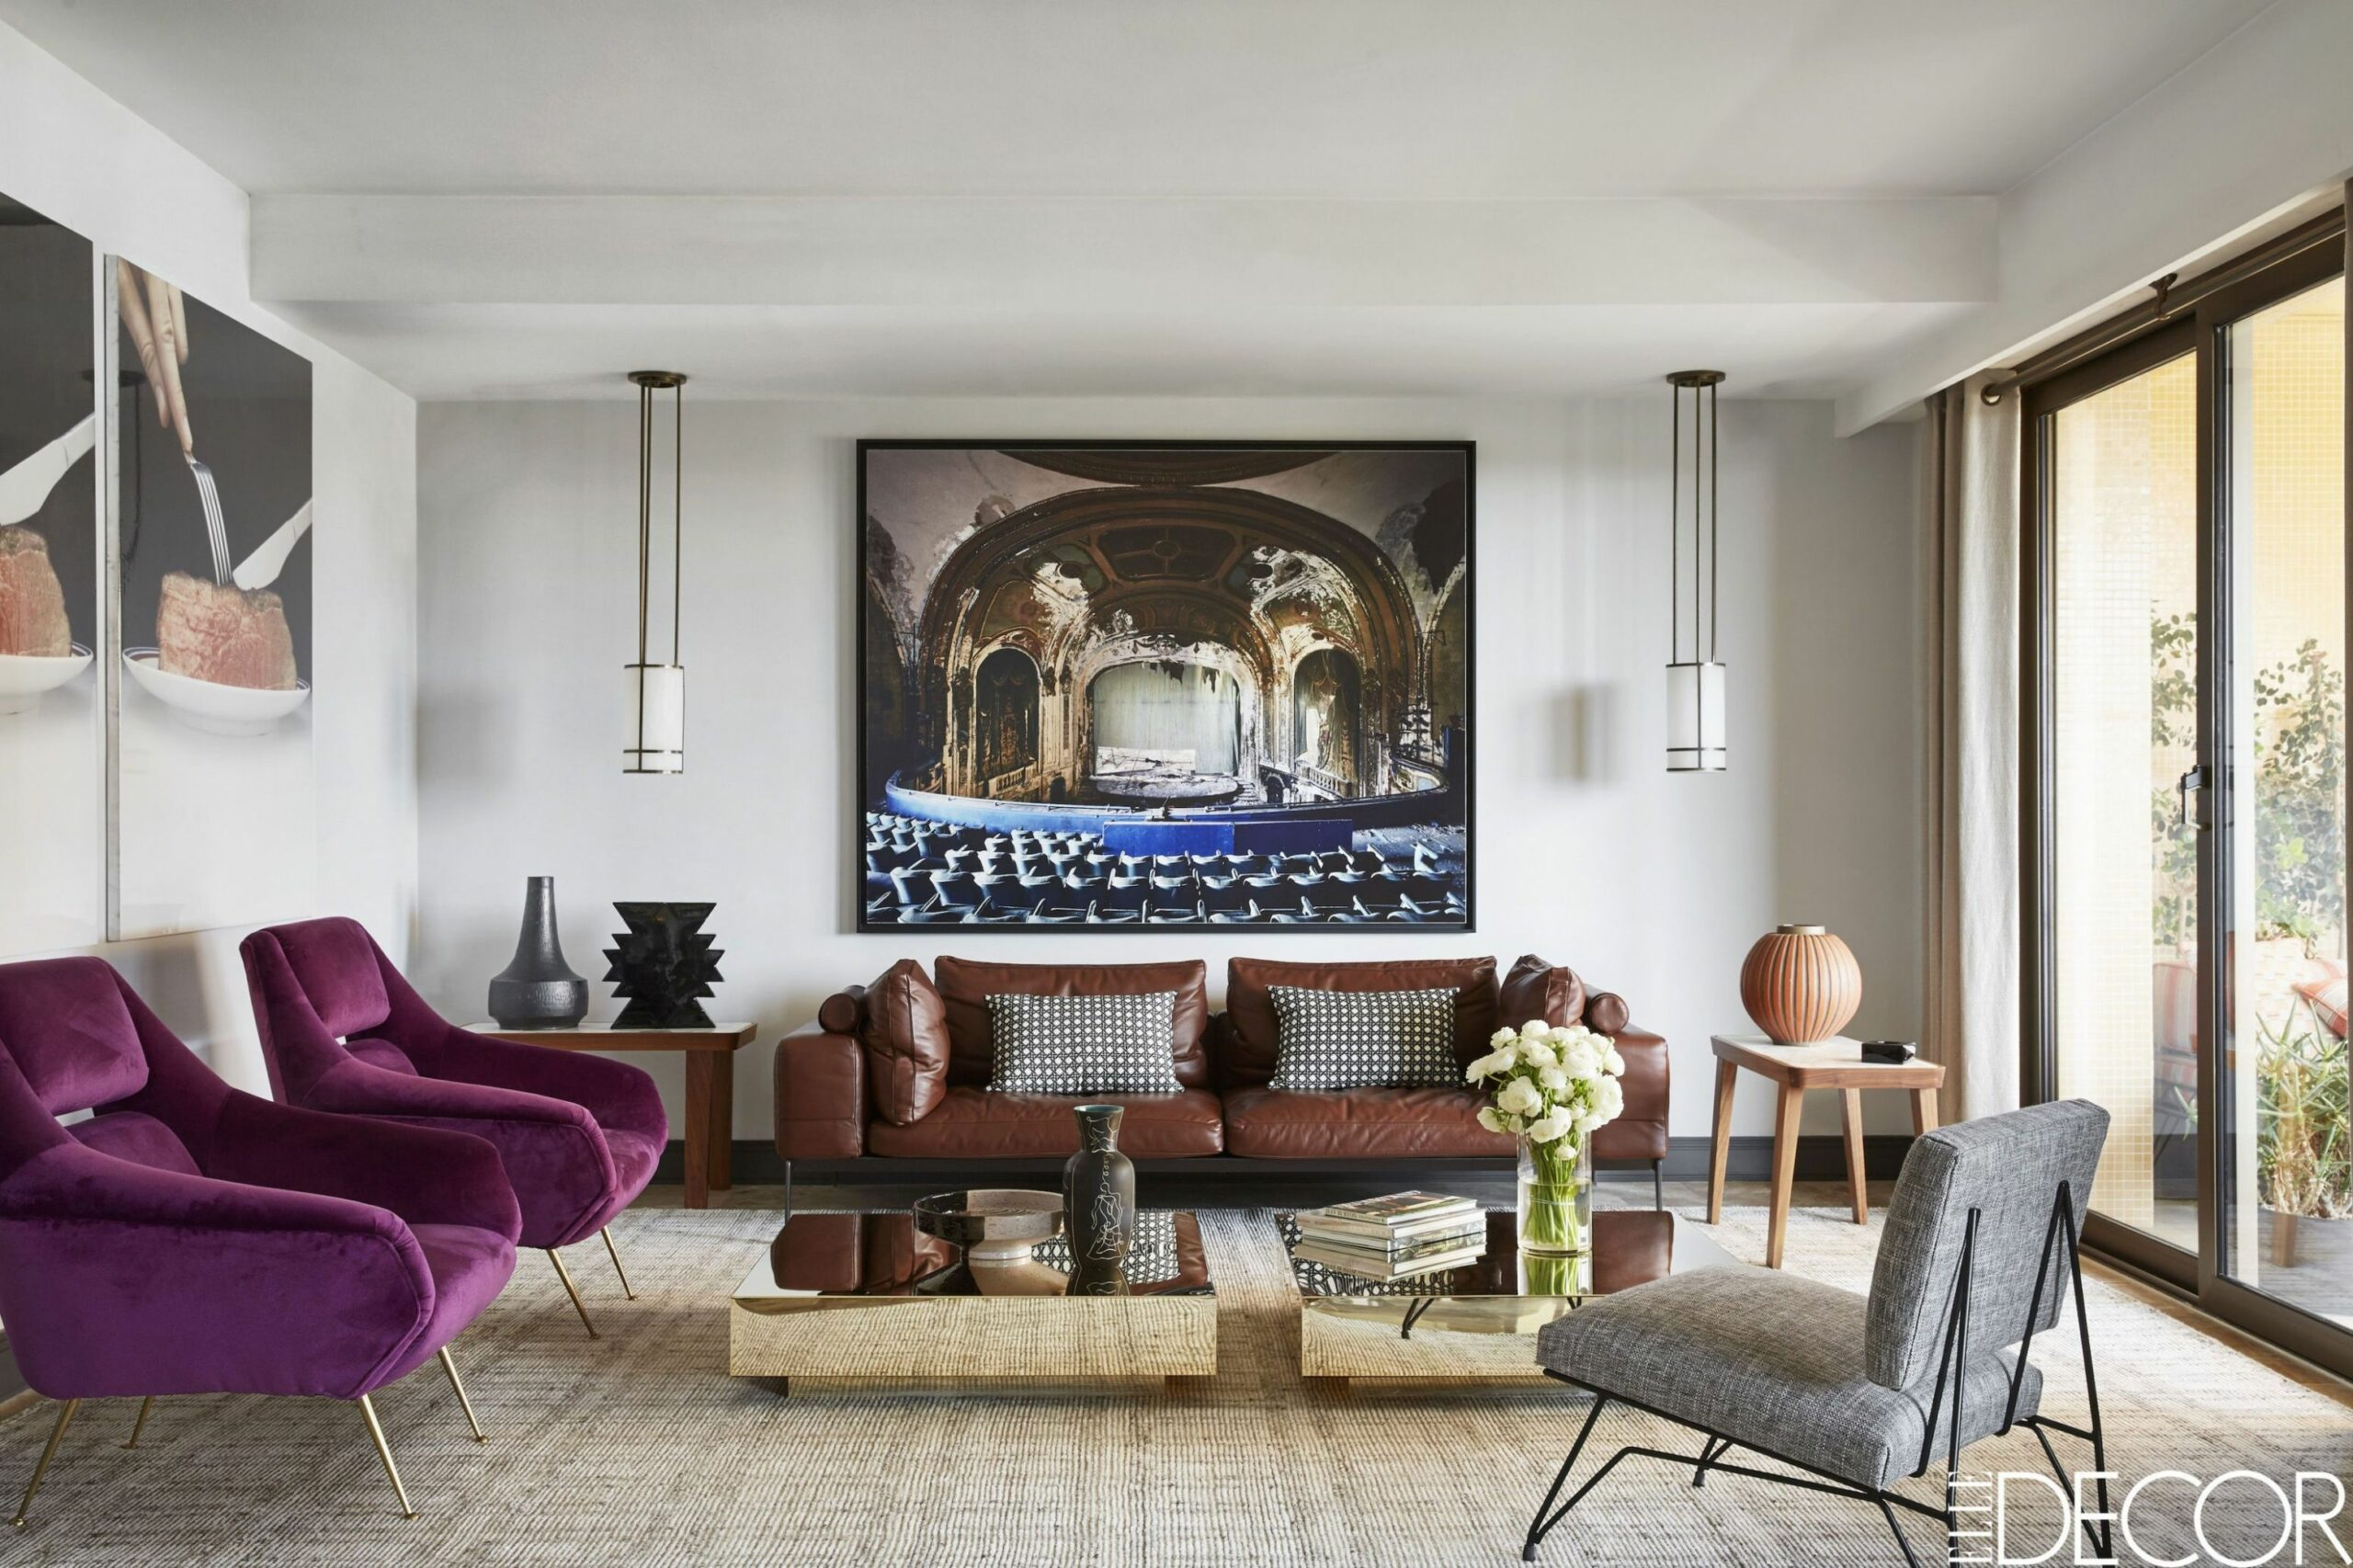 12 Best Wall Decor Ideas - How to Decorate a Large Wall - wall decor ideas next